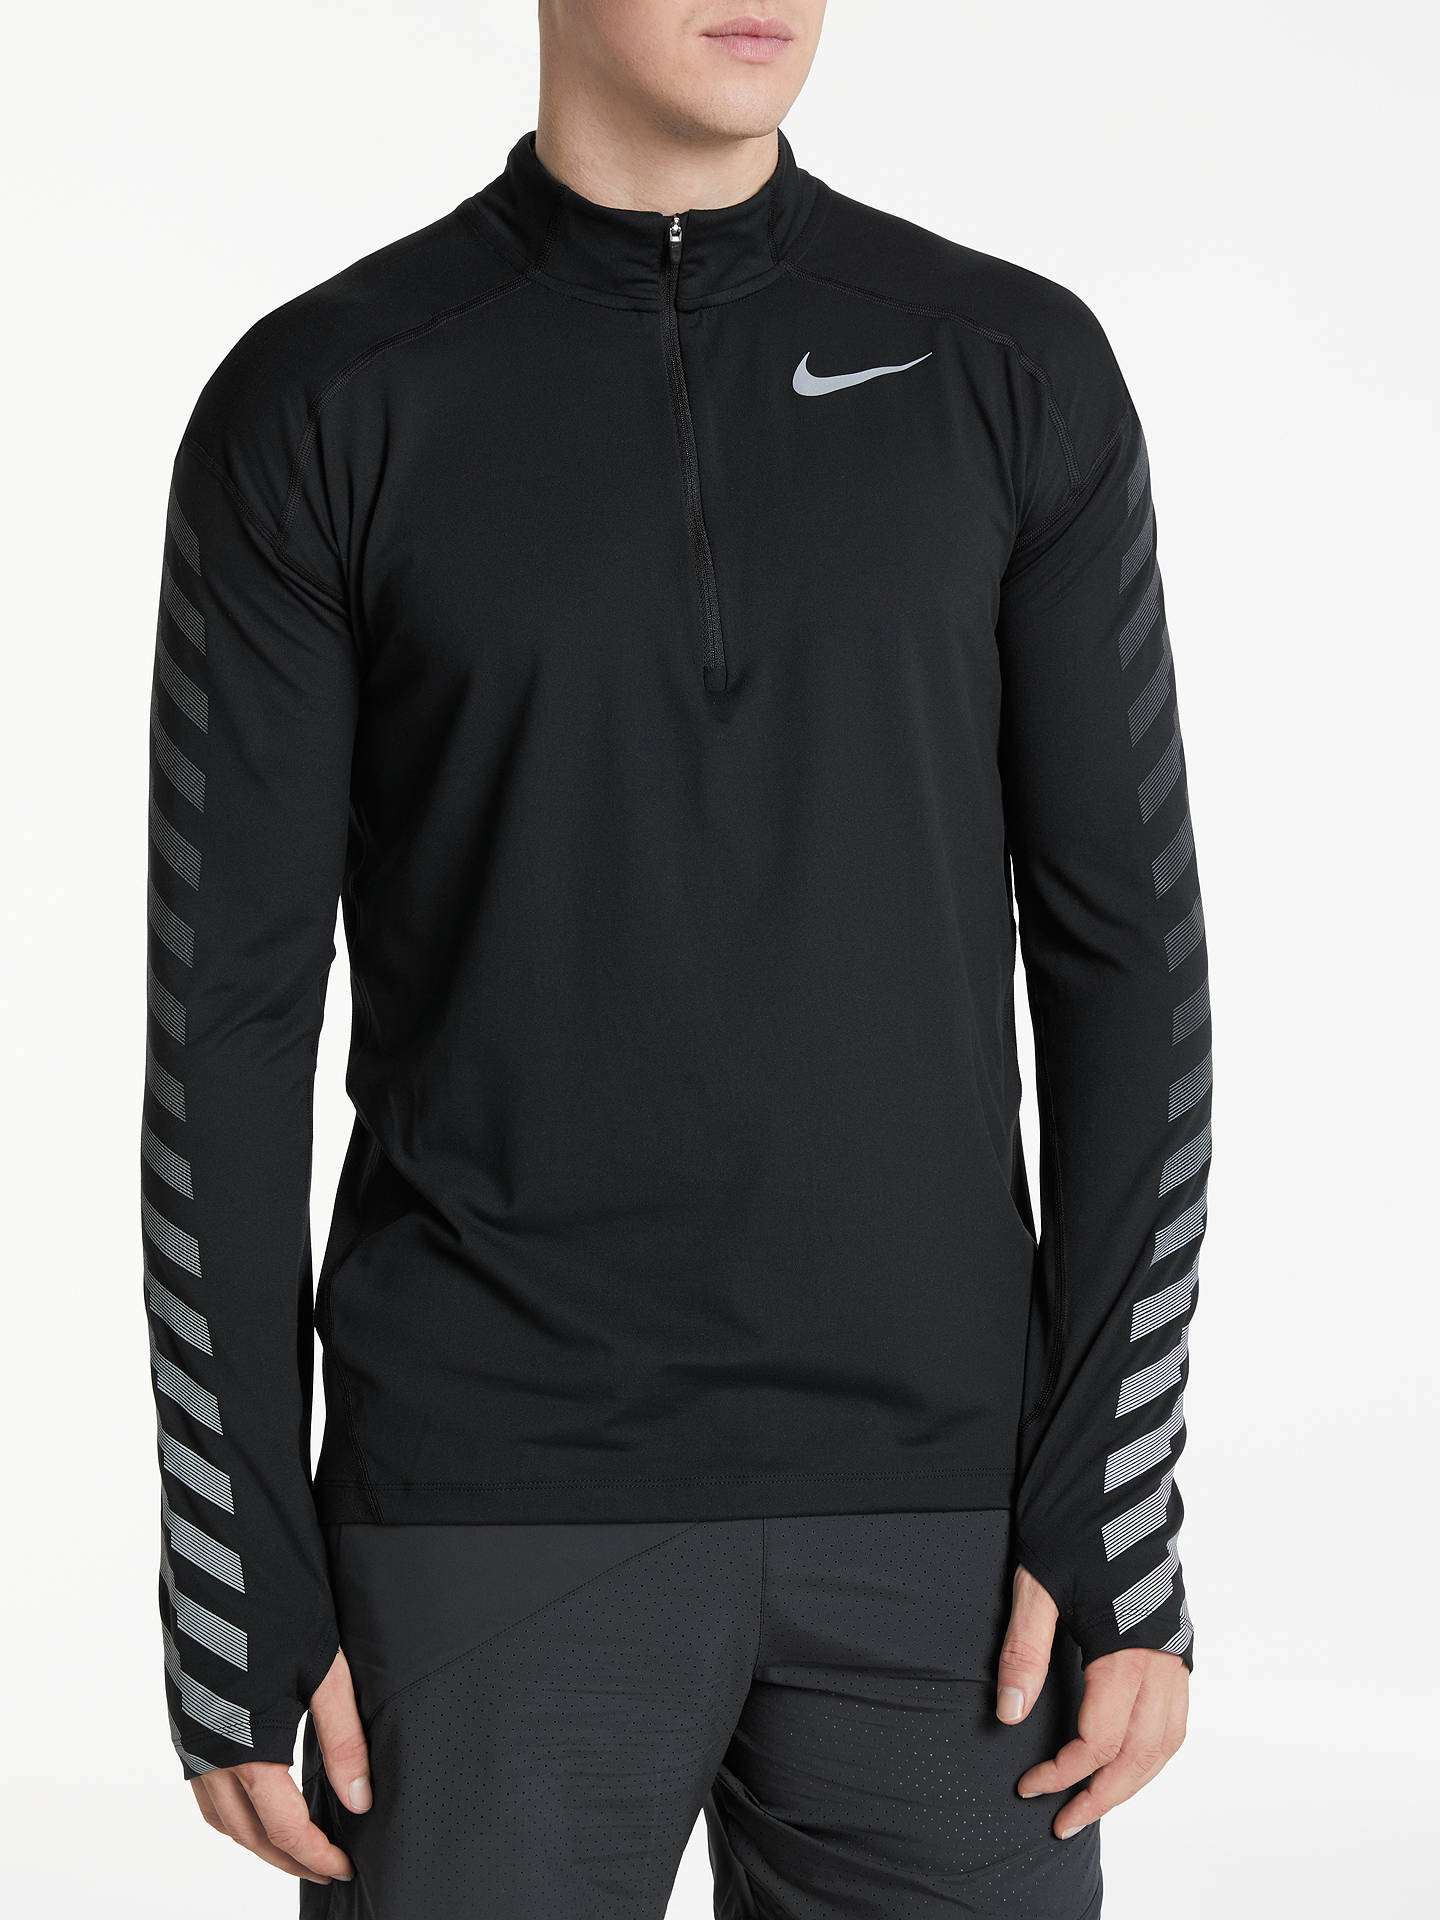 34da834b Nike Dry Element Long Sleeve 1/2 Zip Running Top, Black at John ...